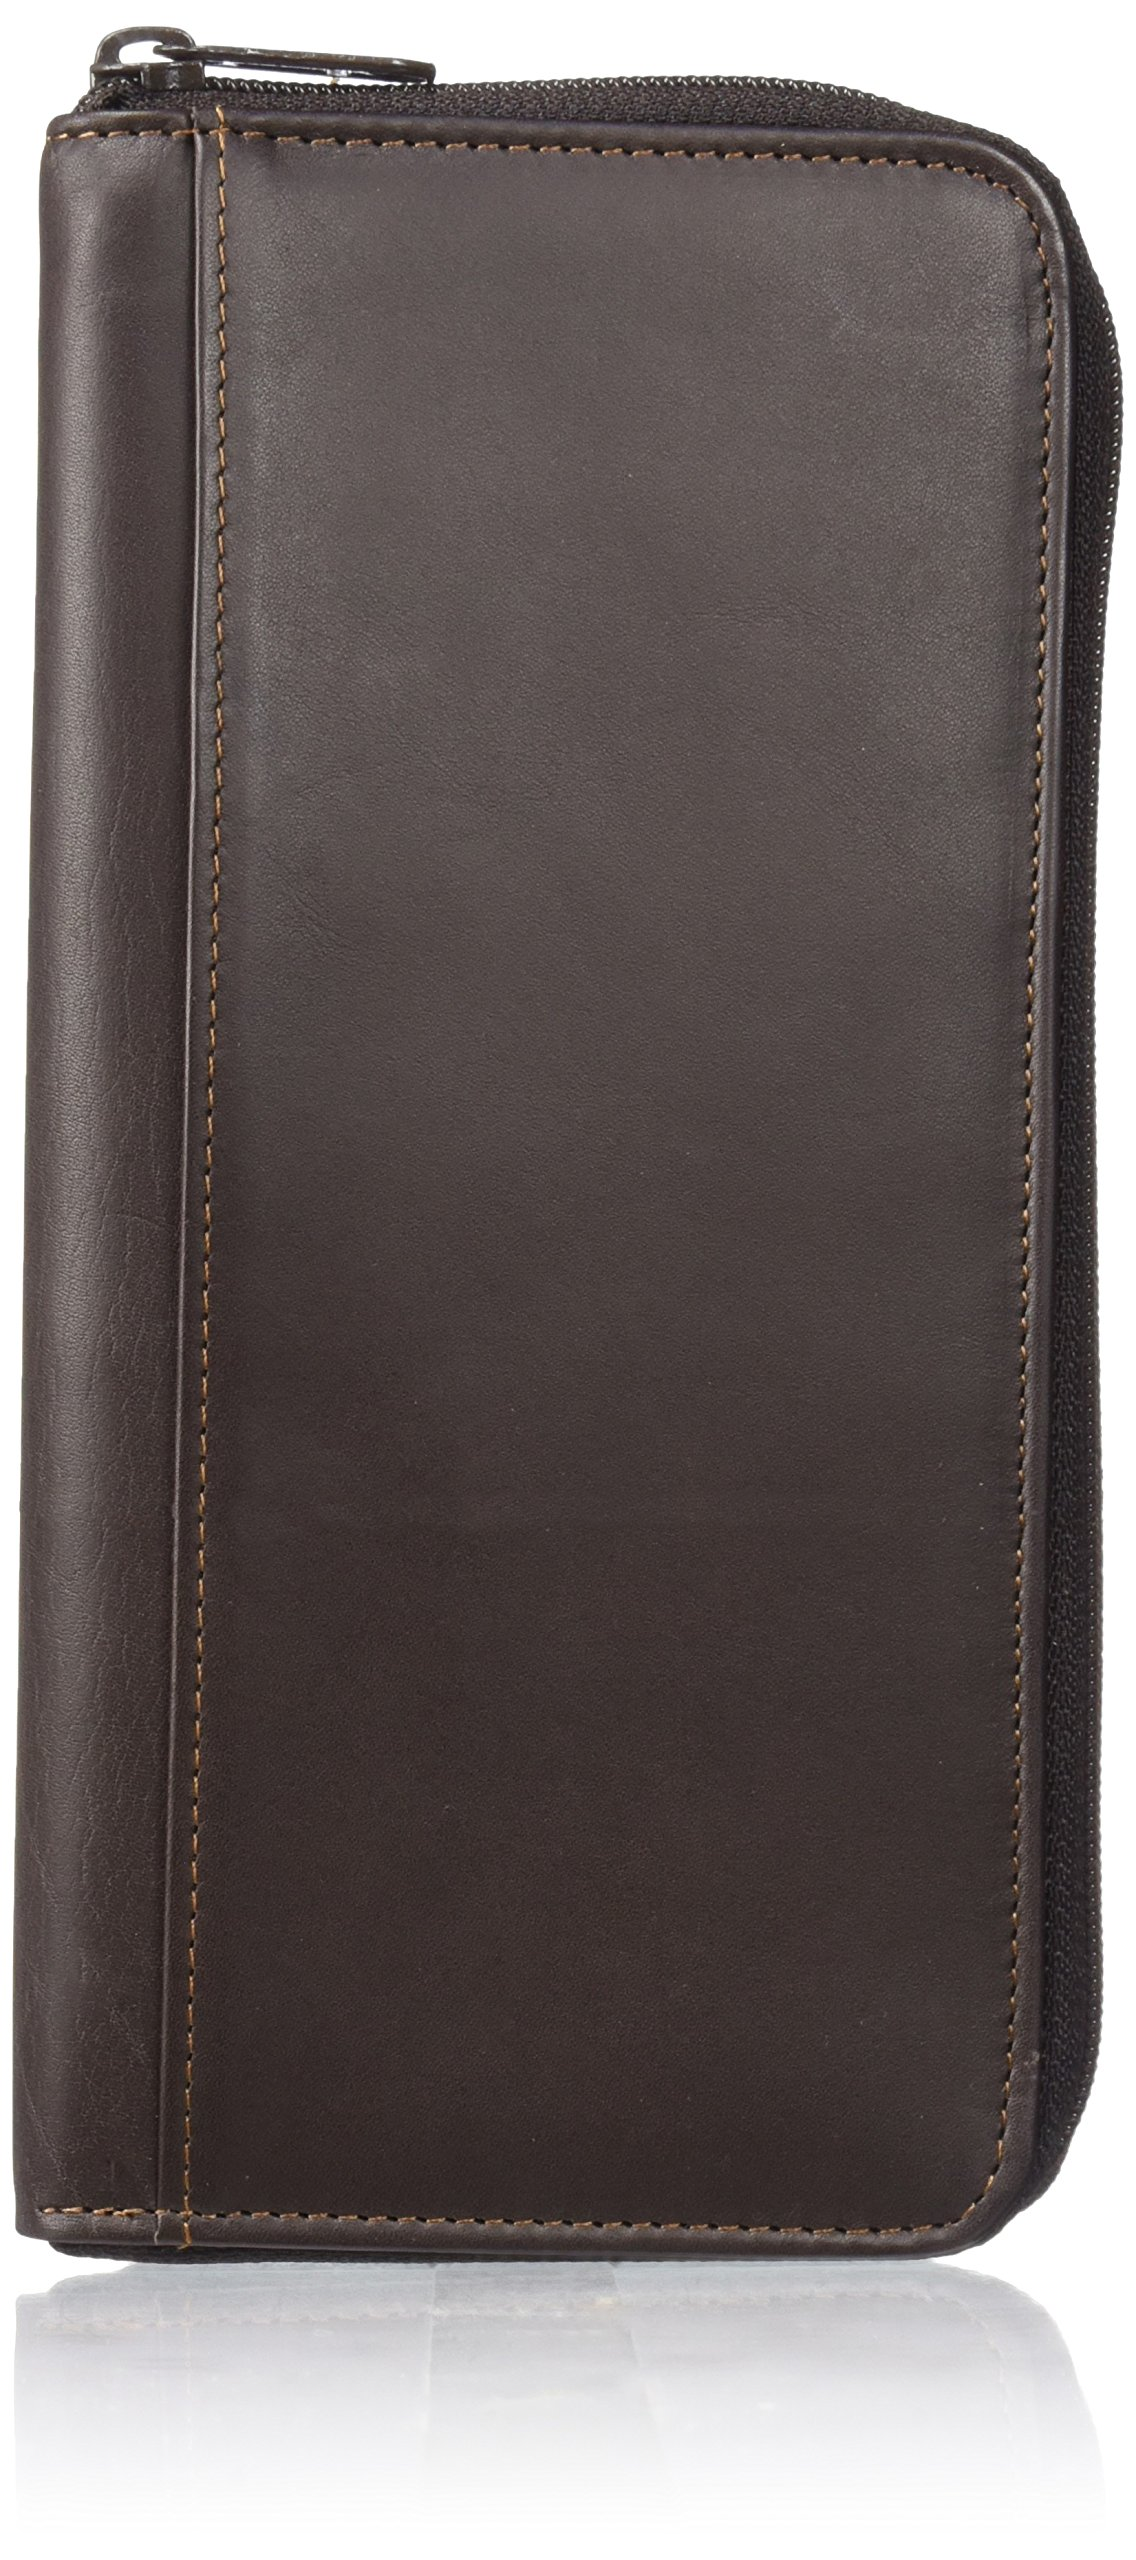 Dopp Men's Regatta Leather Zipper Passport Organizer Wallet, Brown One Size